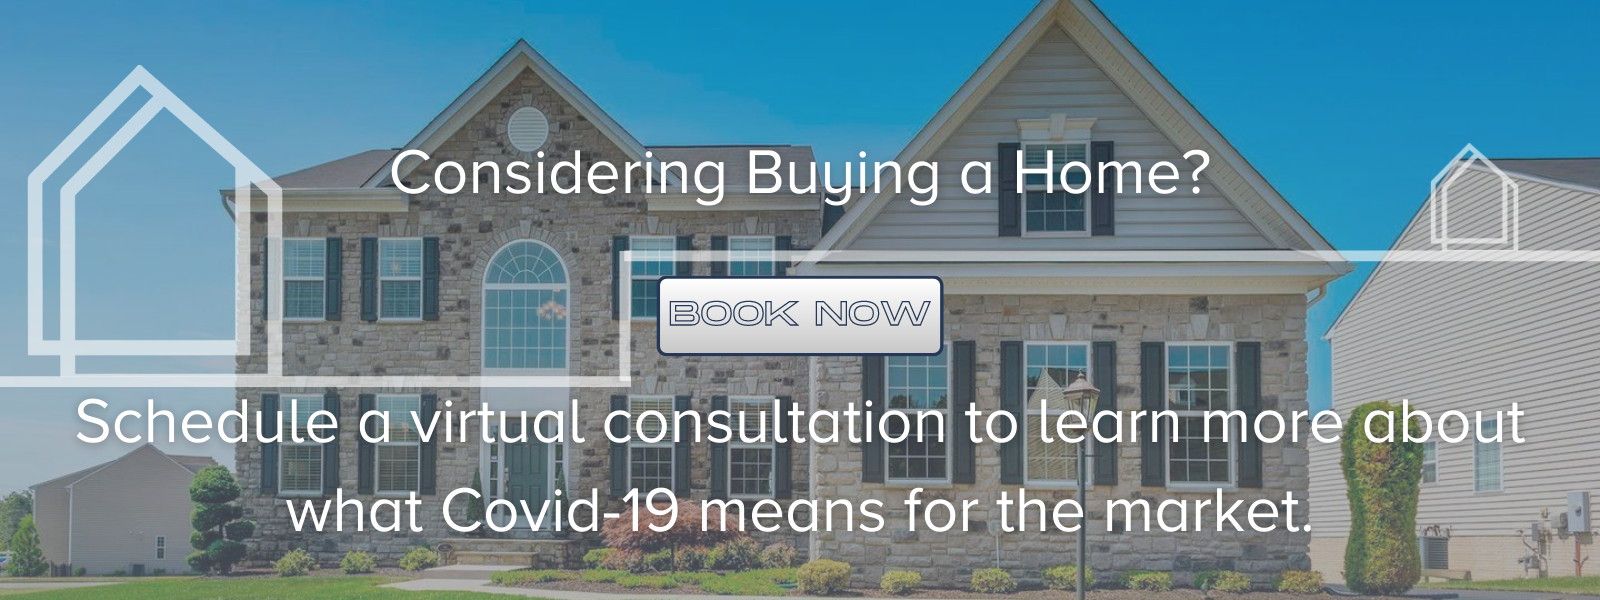 Considering buying a home? Learn more about what Covid-19 means for the market.